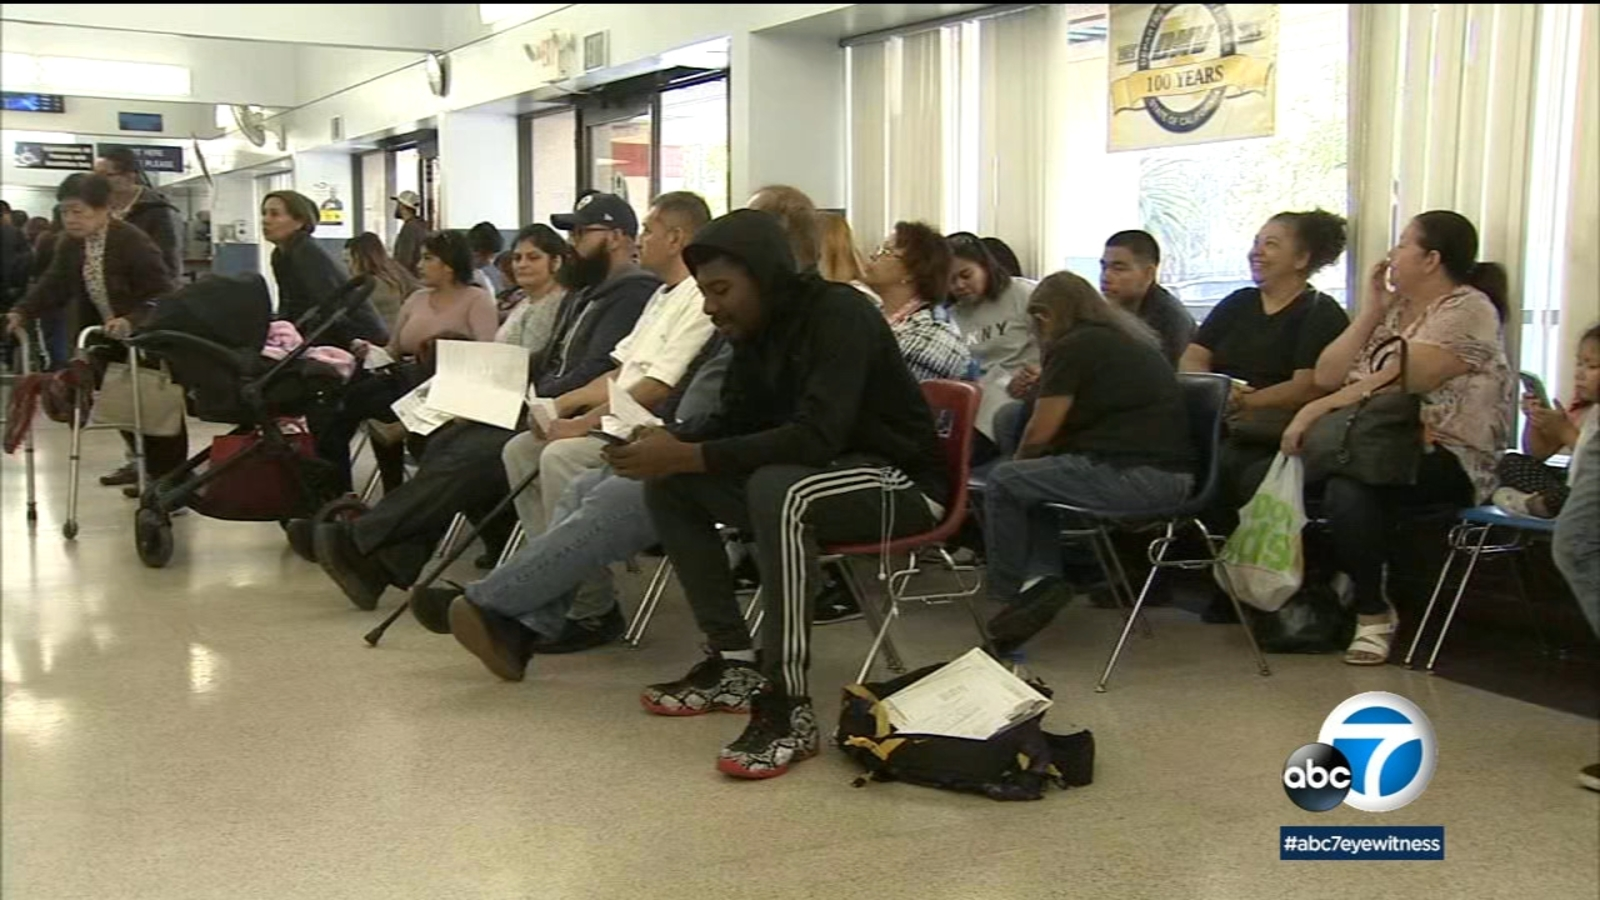 People across California standing in line at Department of Motor Vehicles to get Real ID